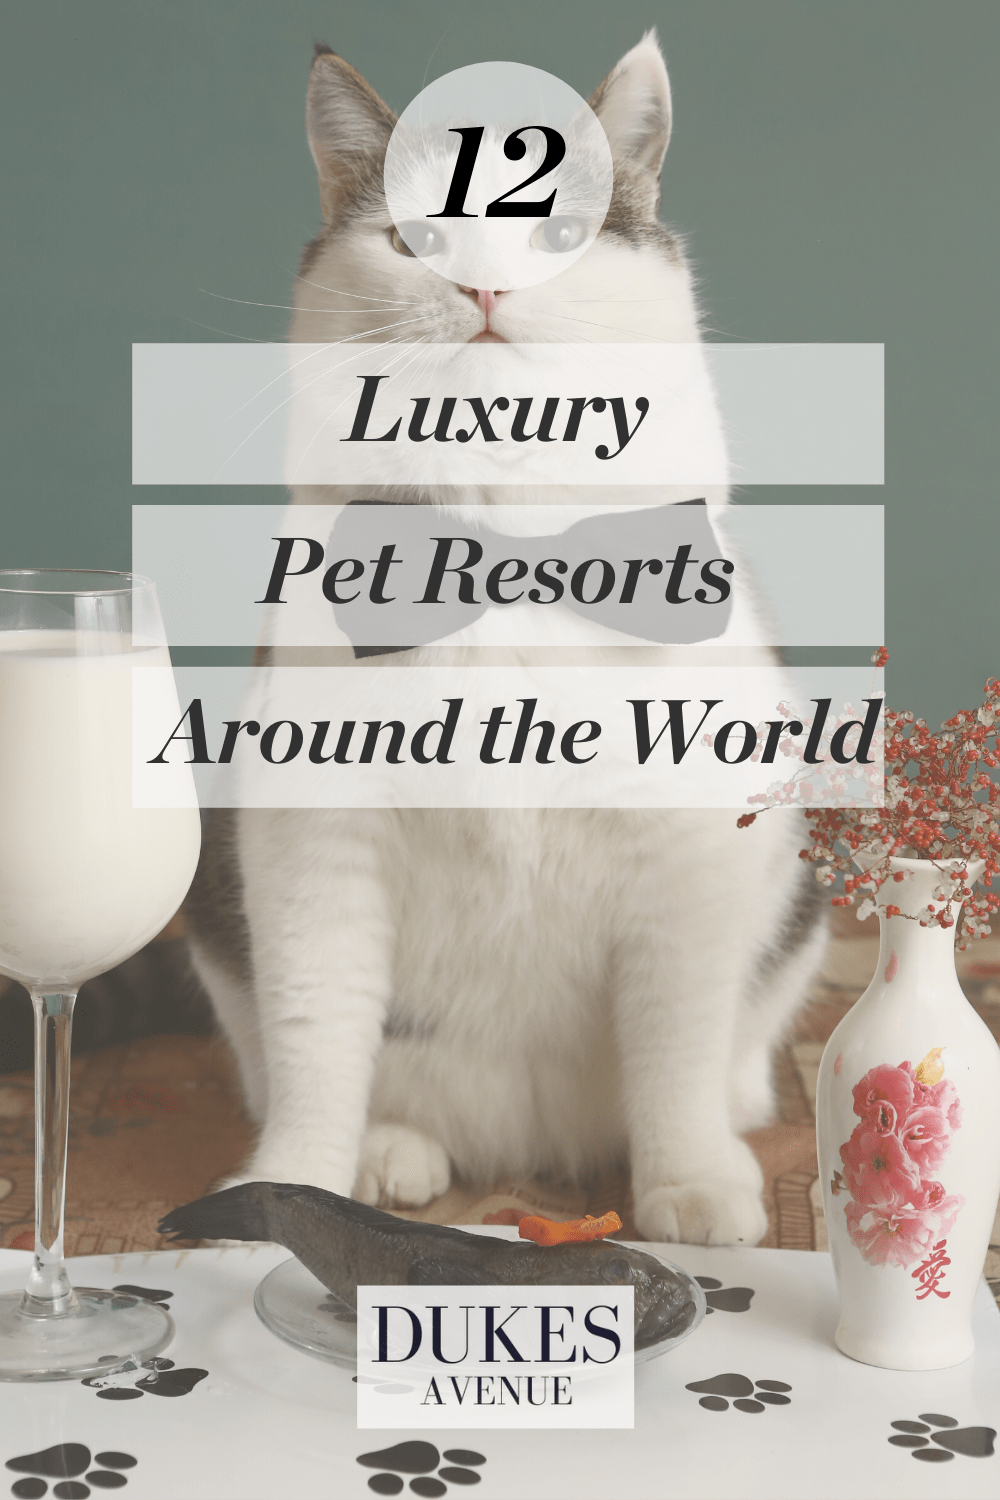 Luxury Pet Resorts Around the World